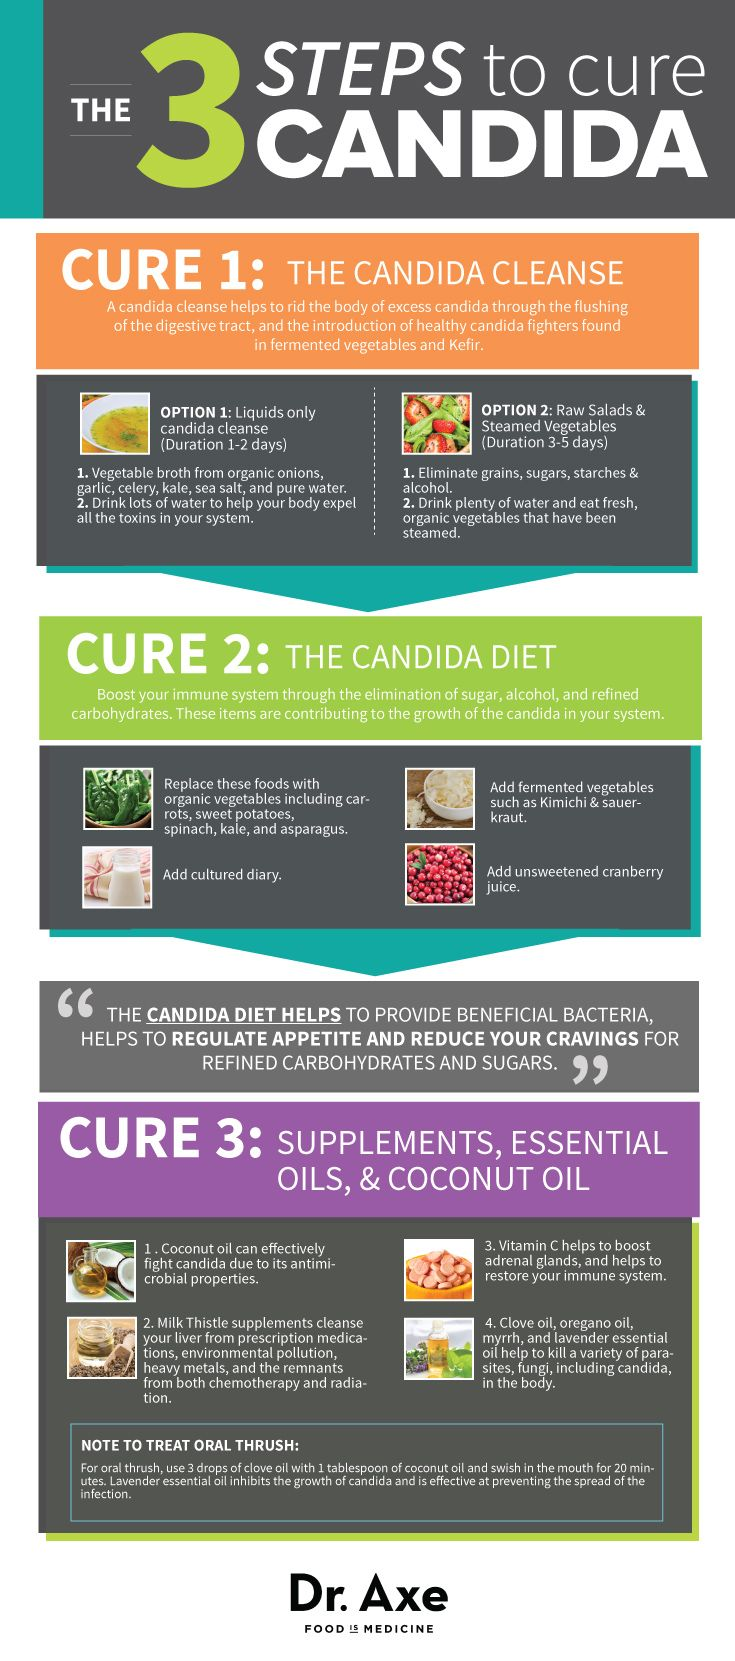 Are you exhausted, experiencing fuzzing thinking, suffering from muscle weakness and joint pain? If so, you may have candida. Here's how to reverse it.